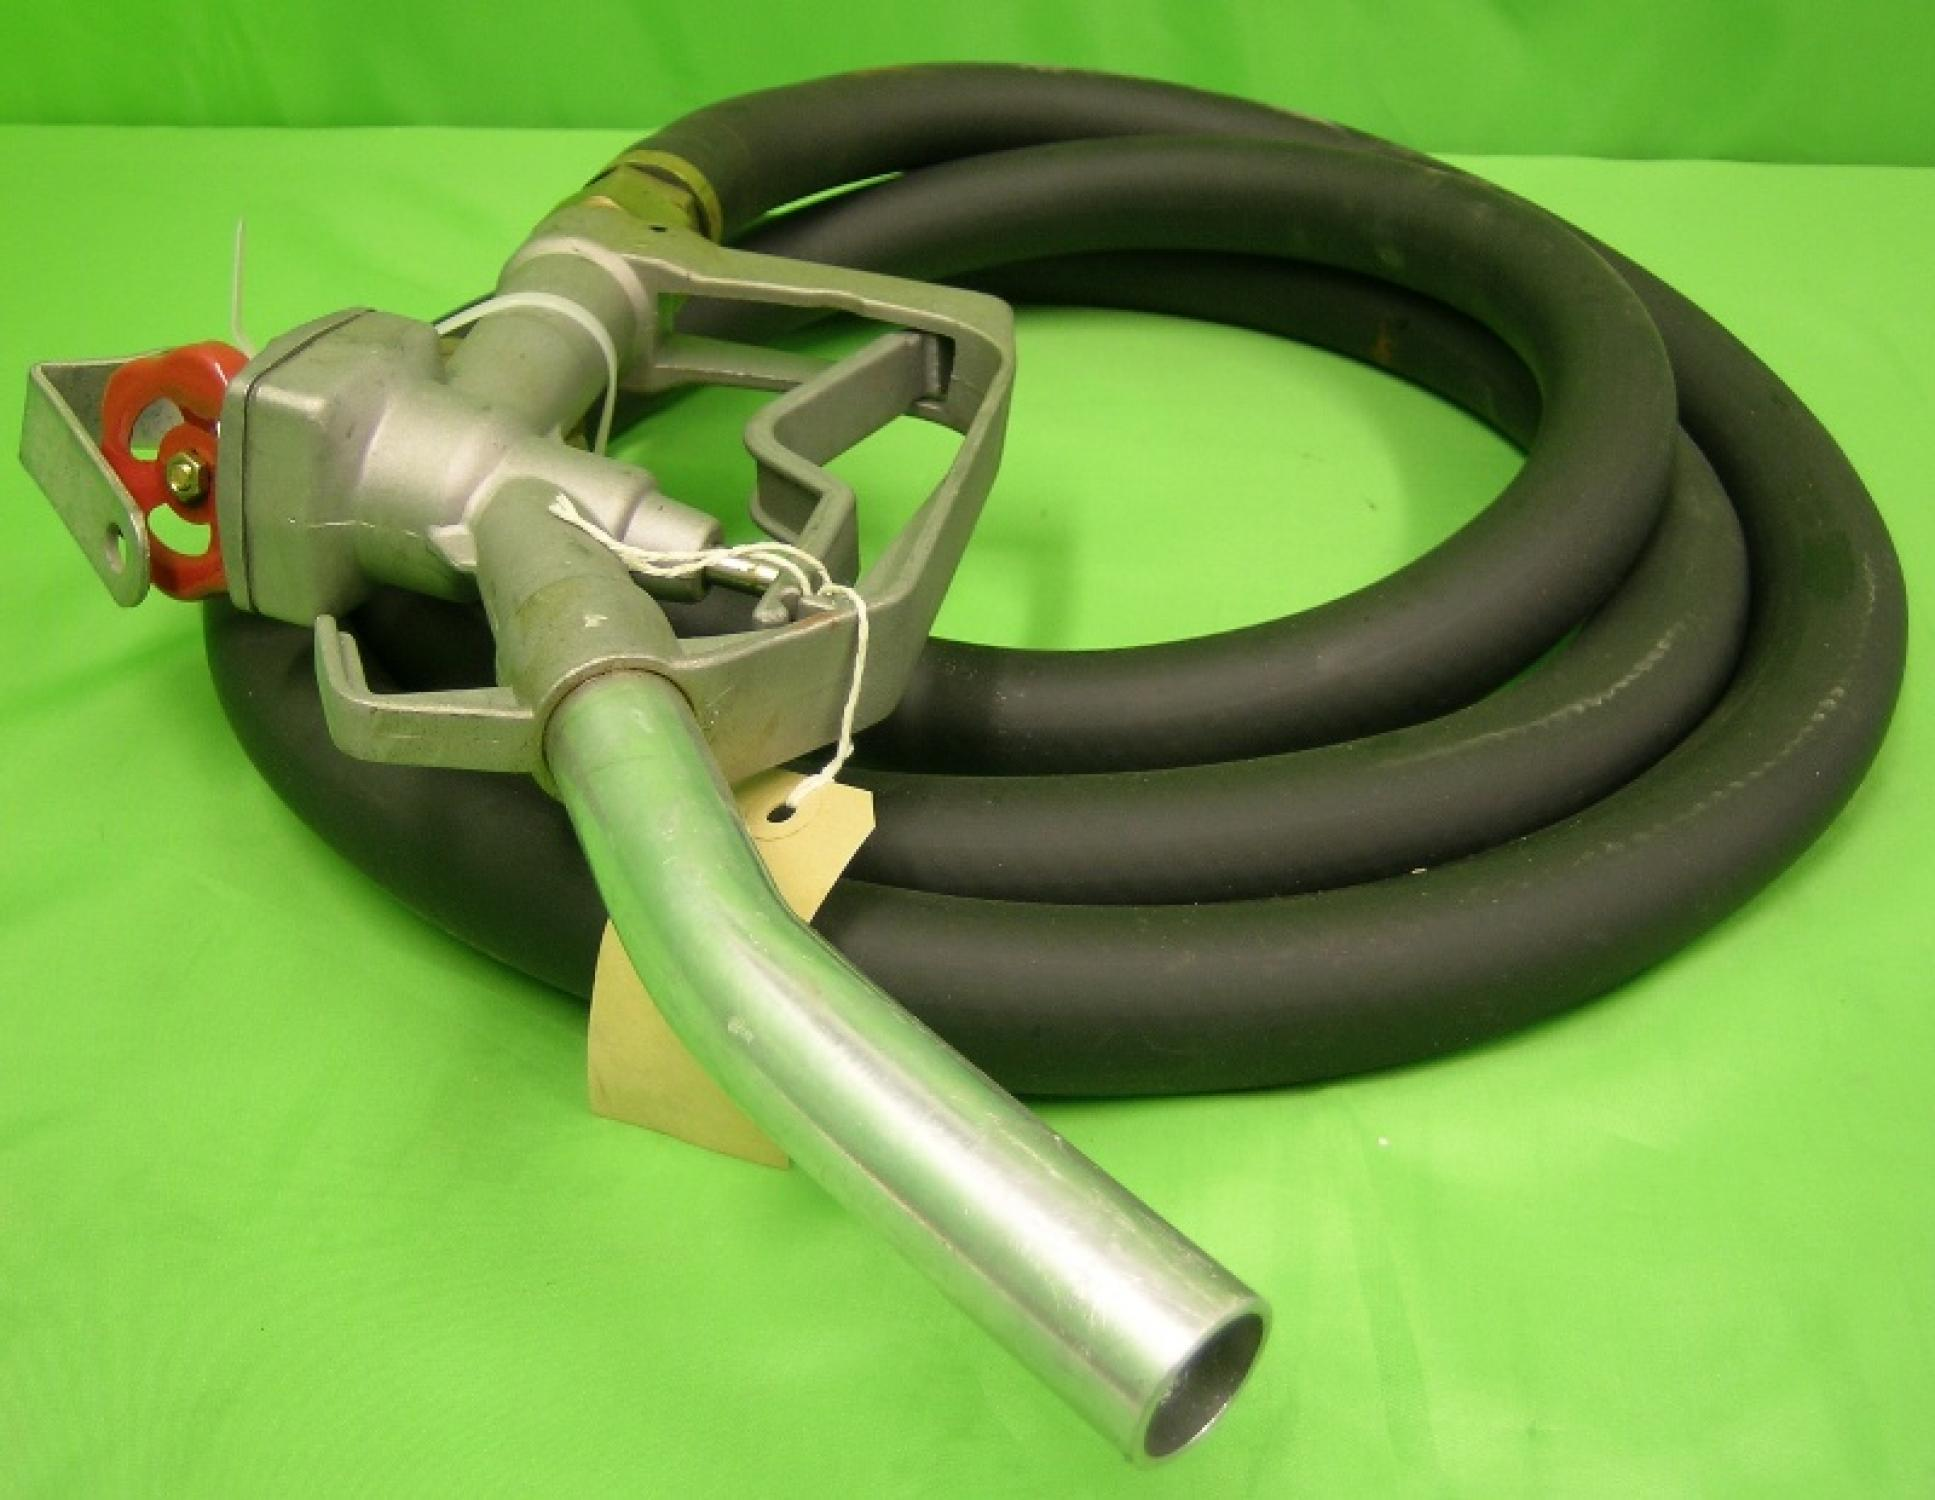 Buy Gravity Fed Diesel Fuel Hose Kit 3m from Fane Valley Stores